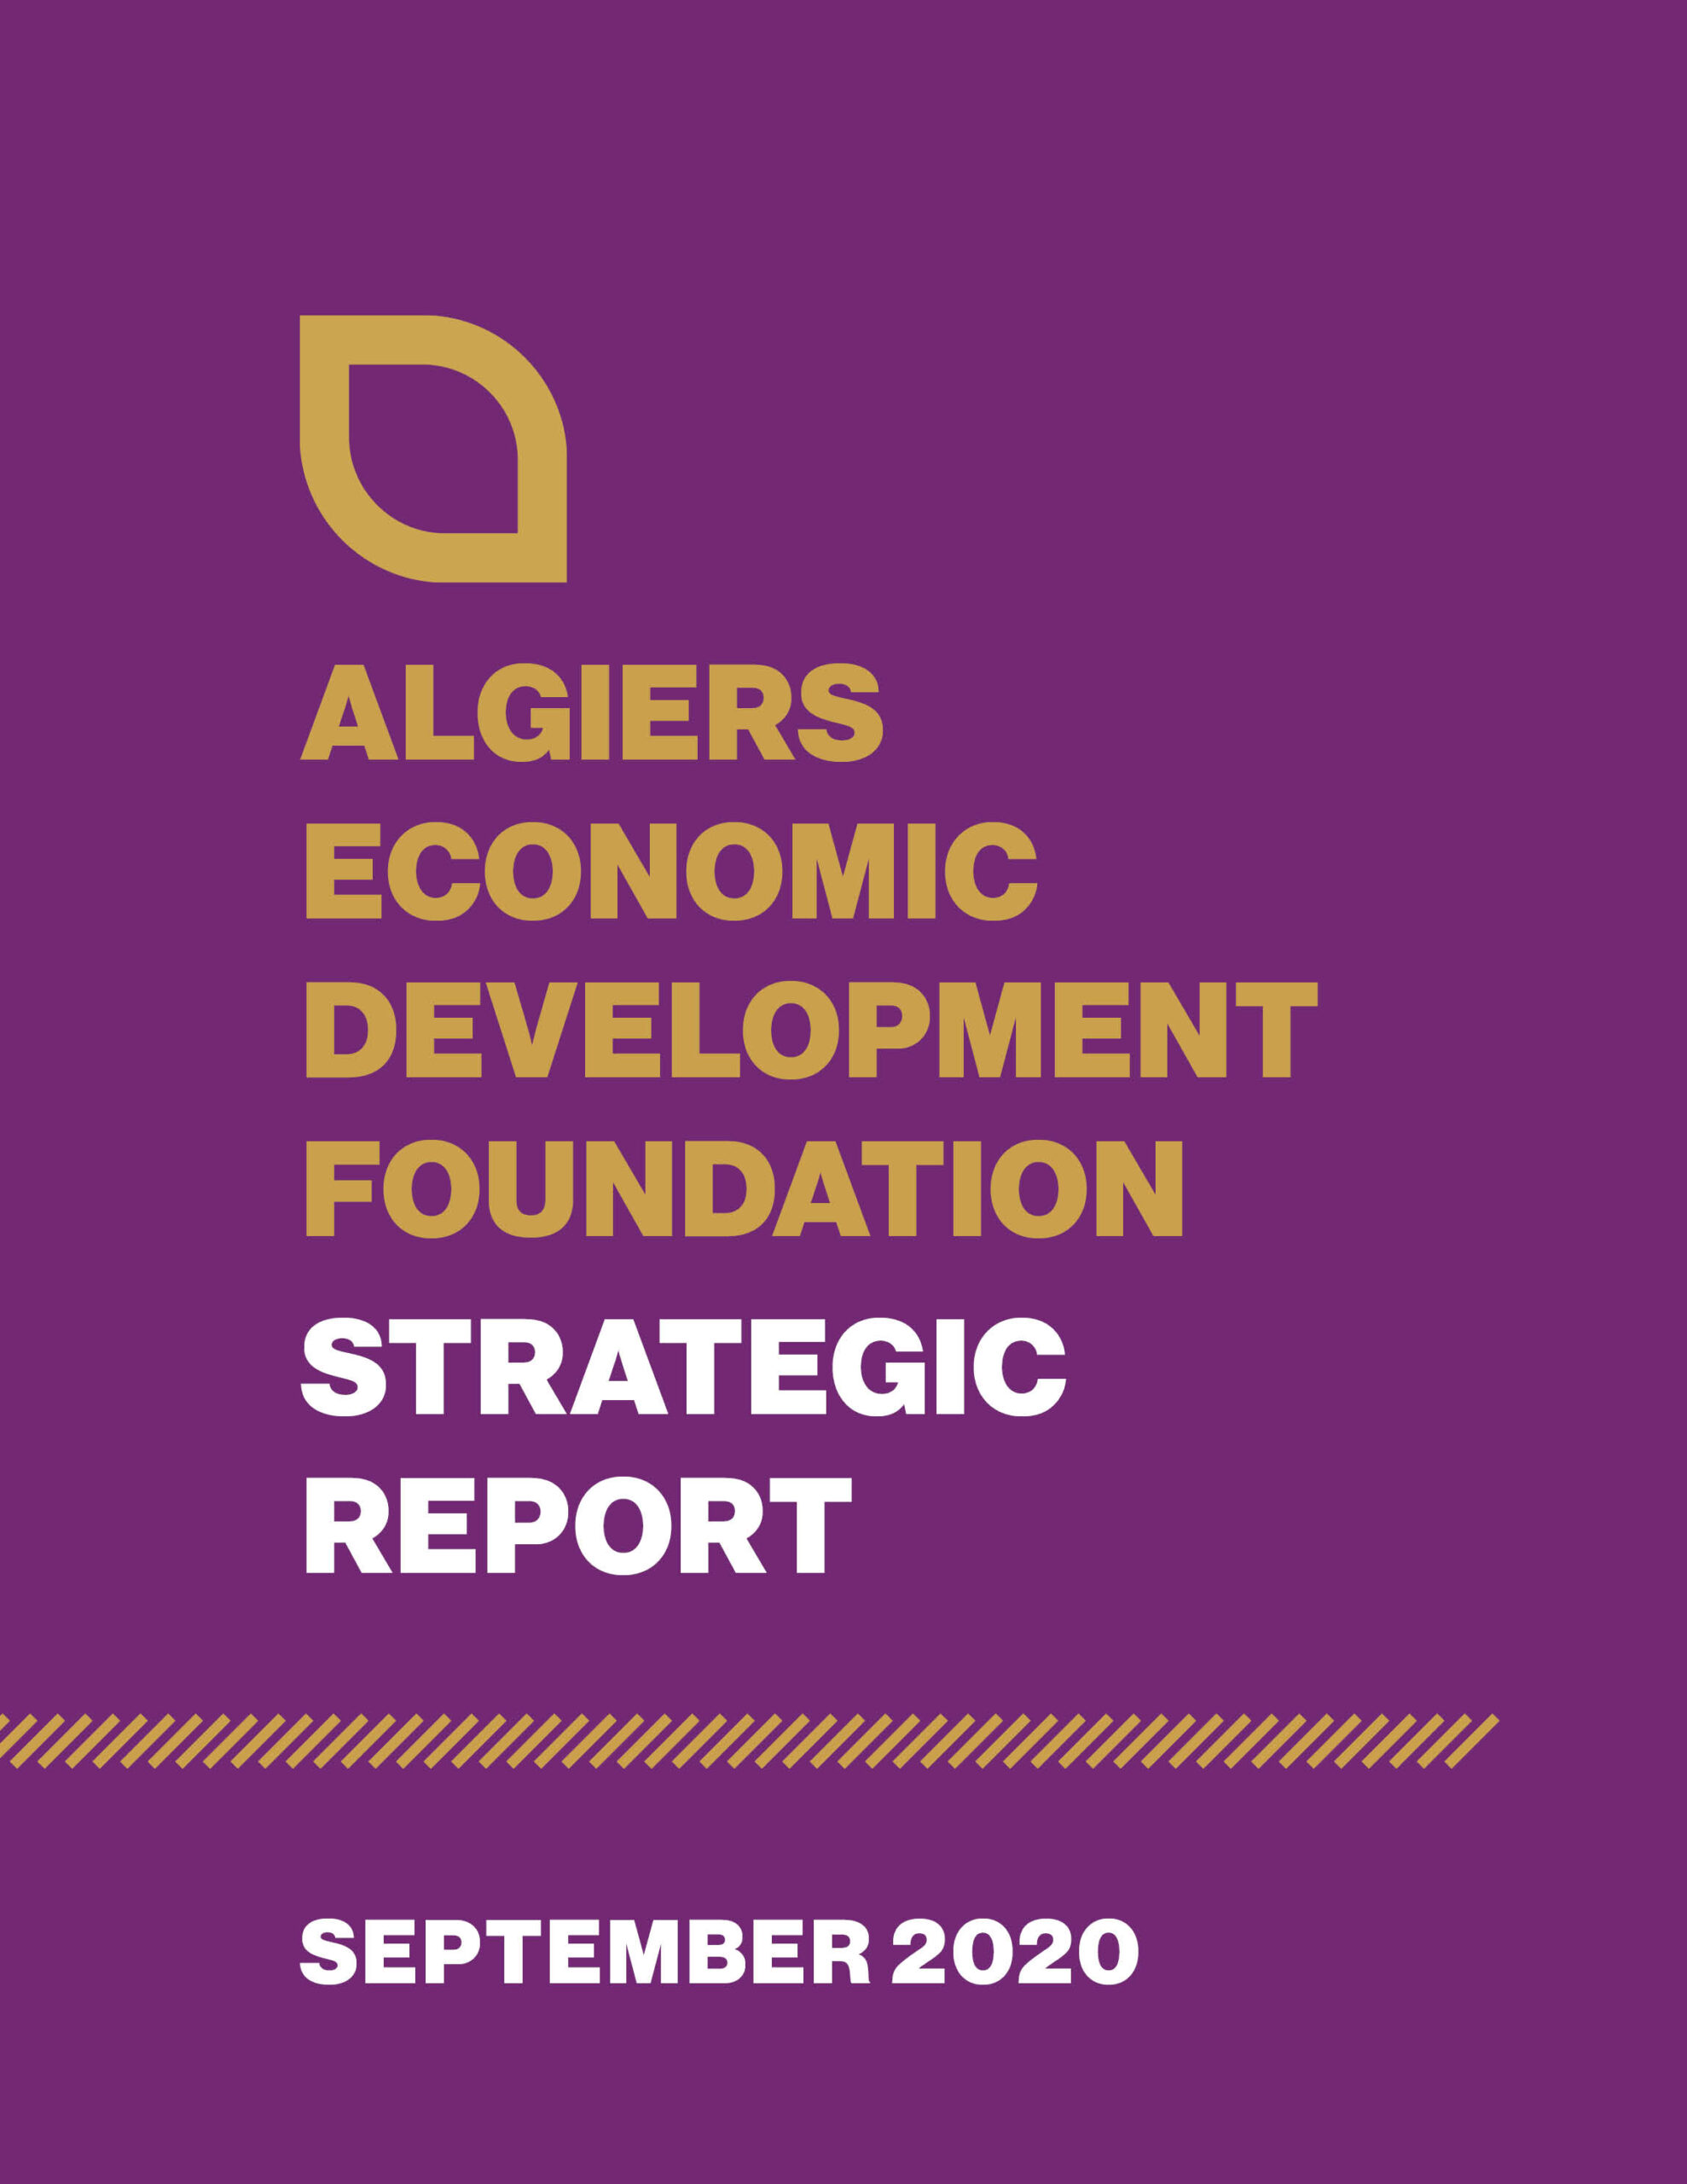 Algiers Economic Development Foundation Strategic Report Cover